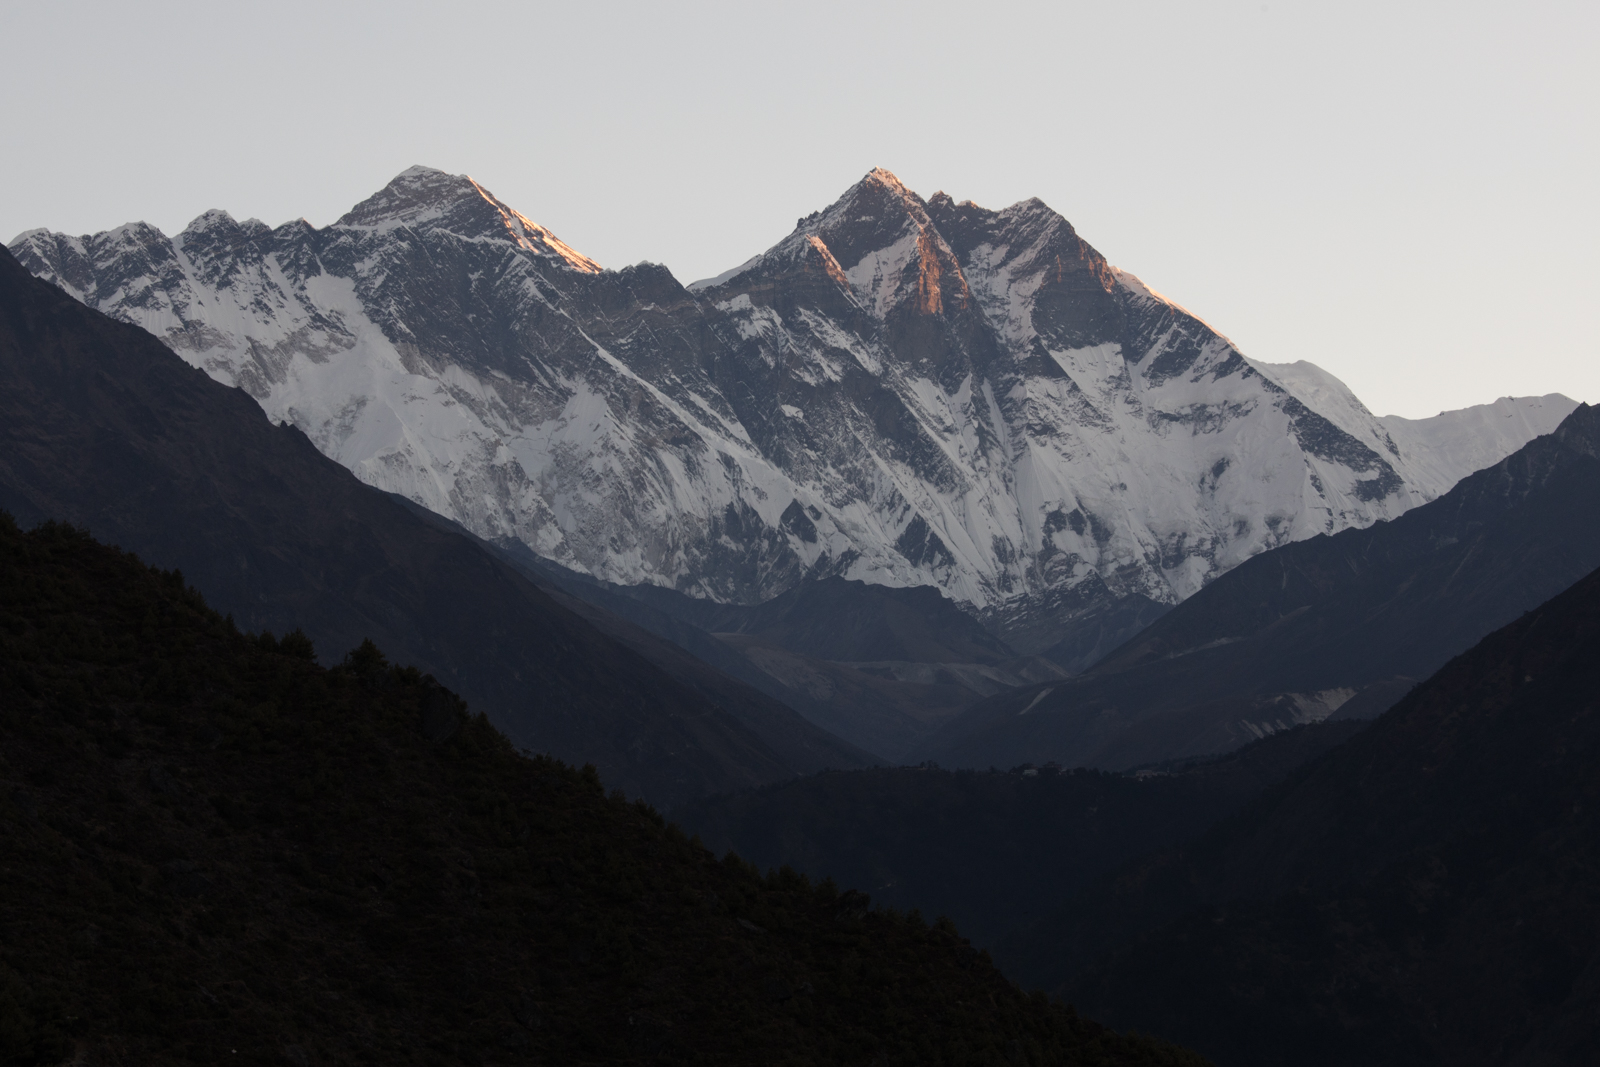 Left to Right: Taboche 6,495 m / 21,309 ft, Nuptse 7,861 m / 25,791 ft, Everest 8,848m / 29,029 ft,  Lhotse 8,516 m / 27,940 ft, Shartse 7,457 m / 24,465 ft. (Elevation credit: PeakFinder)